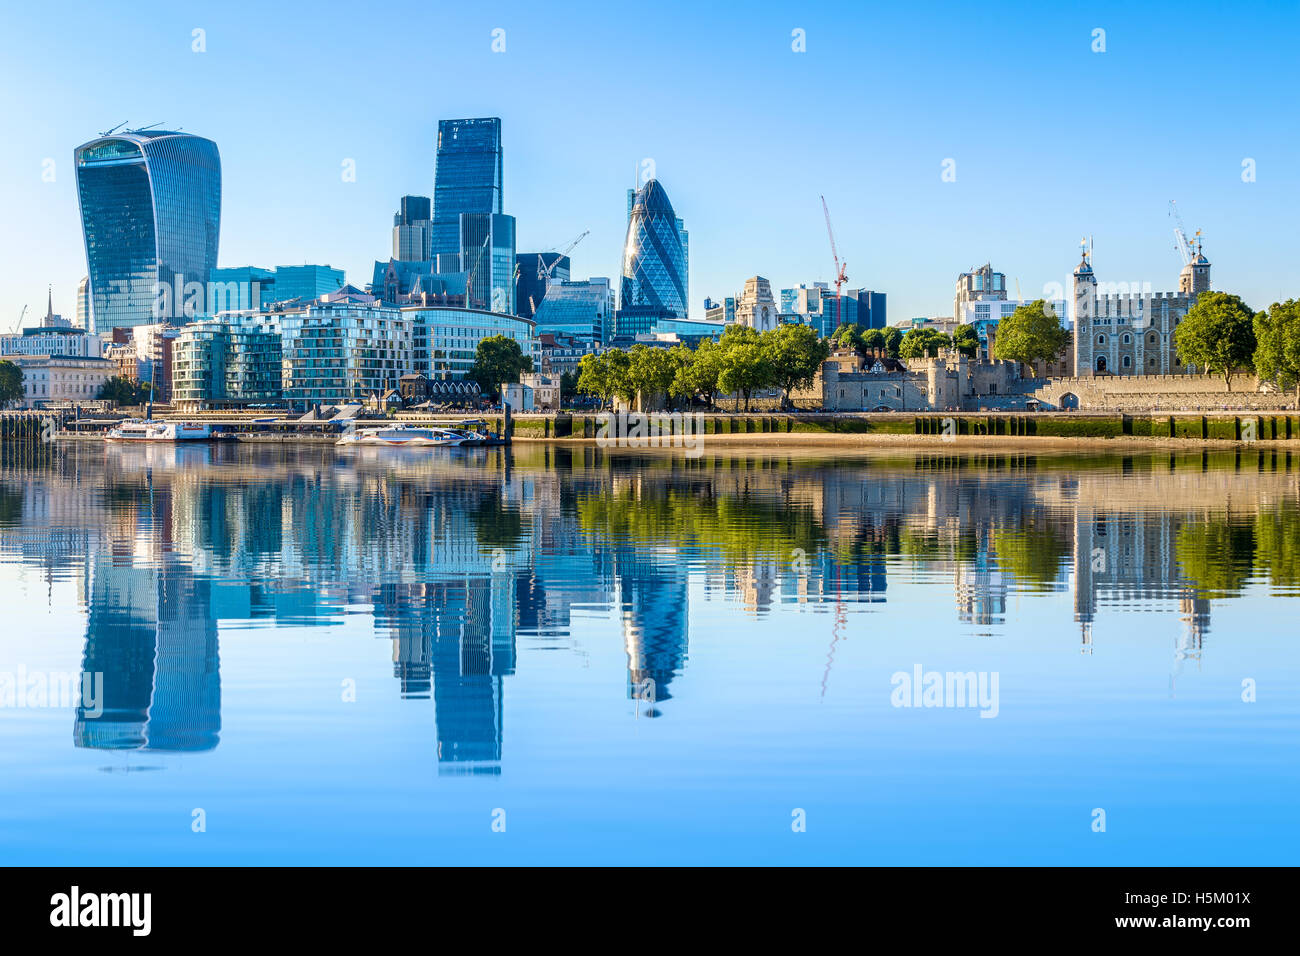 Cloudless day at financial district of London, including The Gherkin, Fenchurch building and Leadenhall building - Stock Image